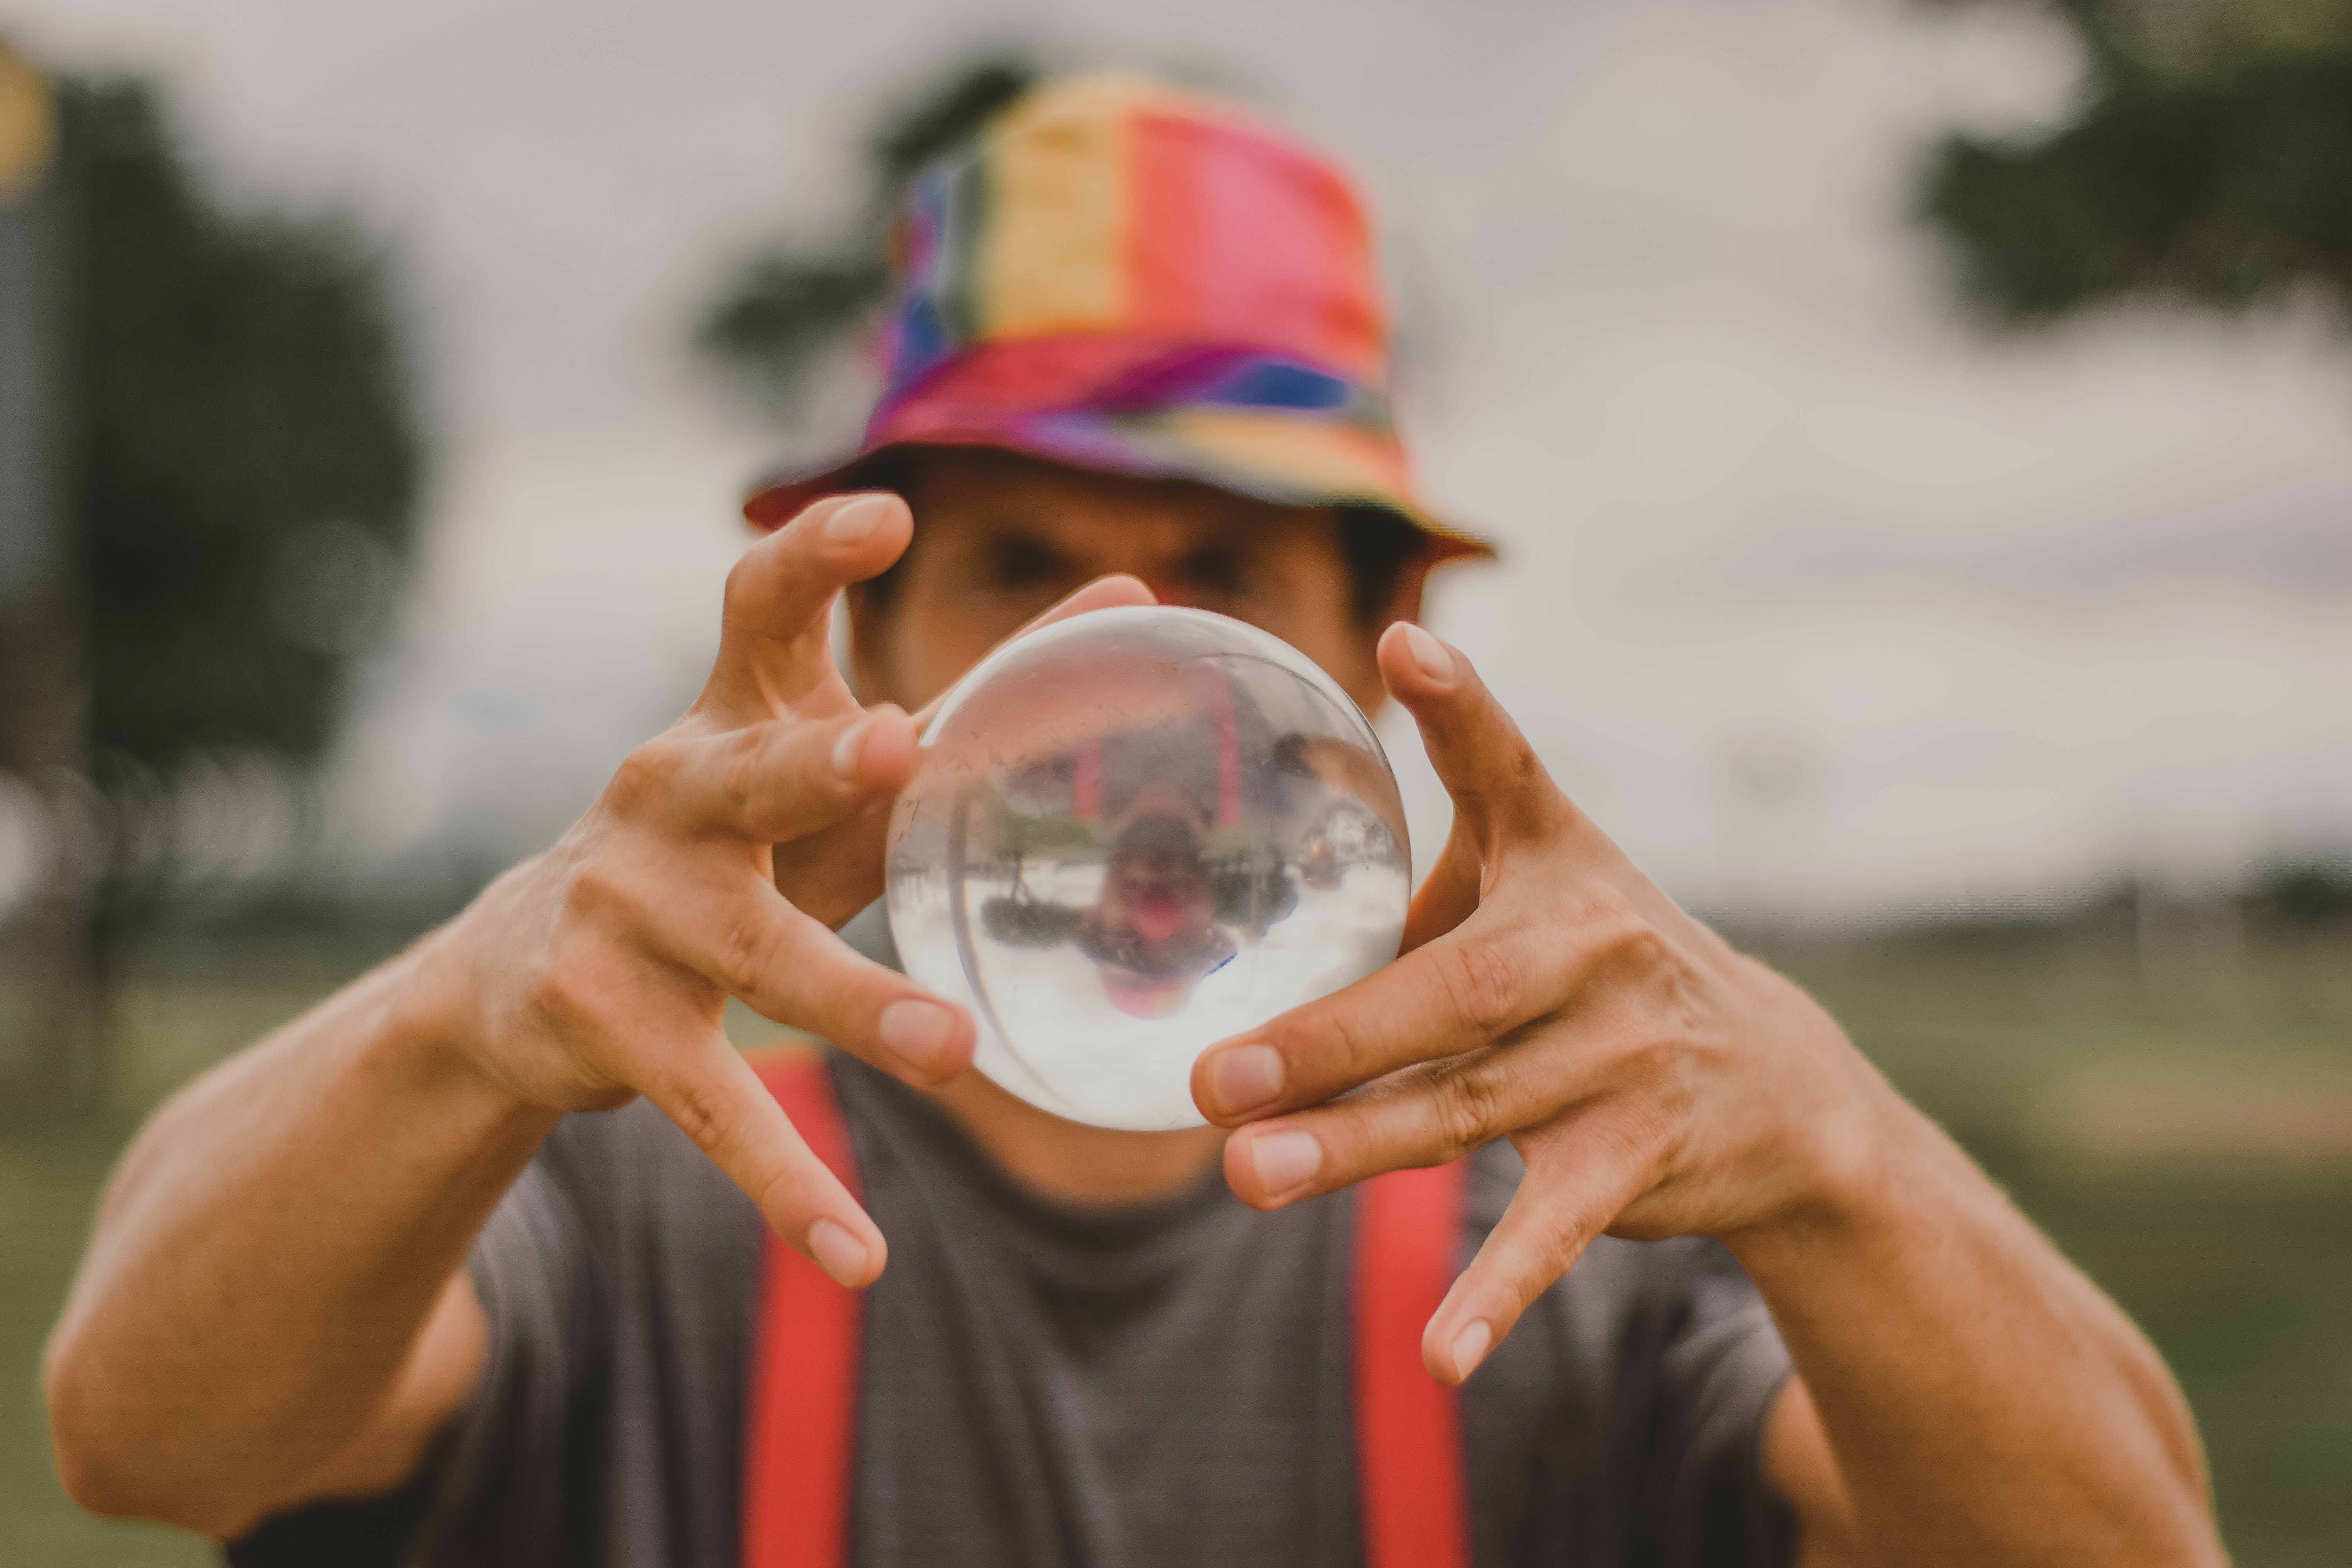 Close-Up Photo of Man Holding Lensball